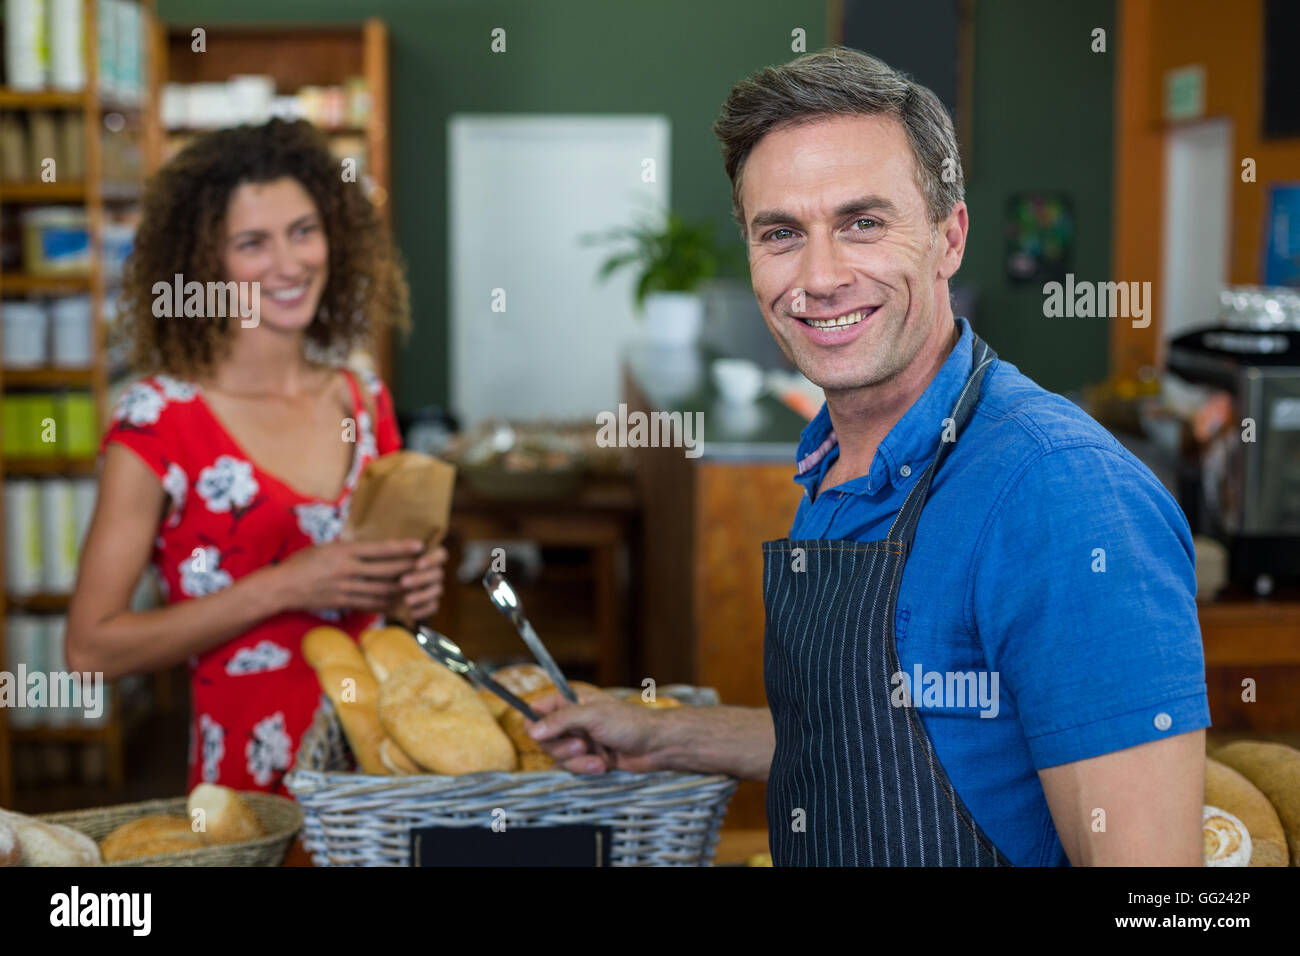 Store Staff Stock Photos Amp Store Staff Stock Images Alamy